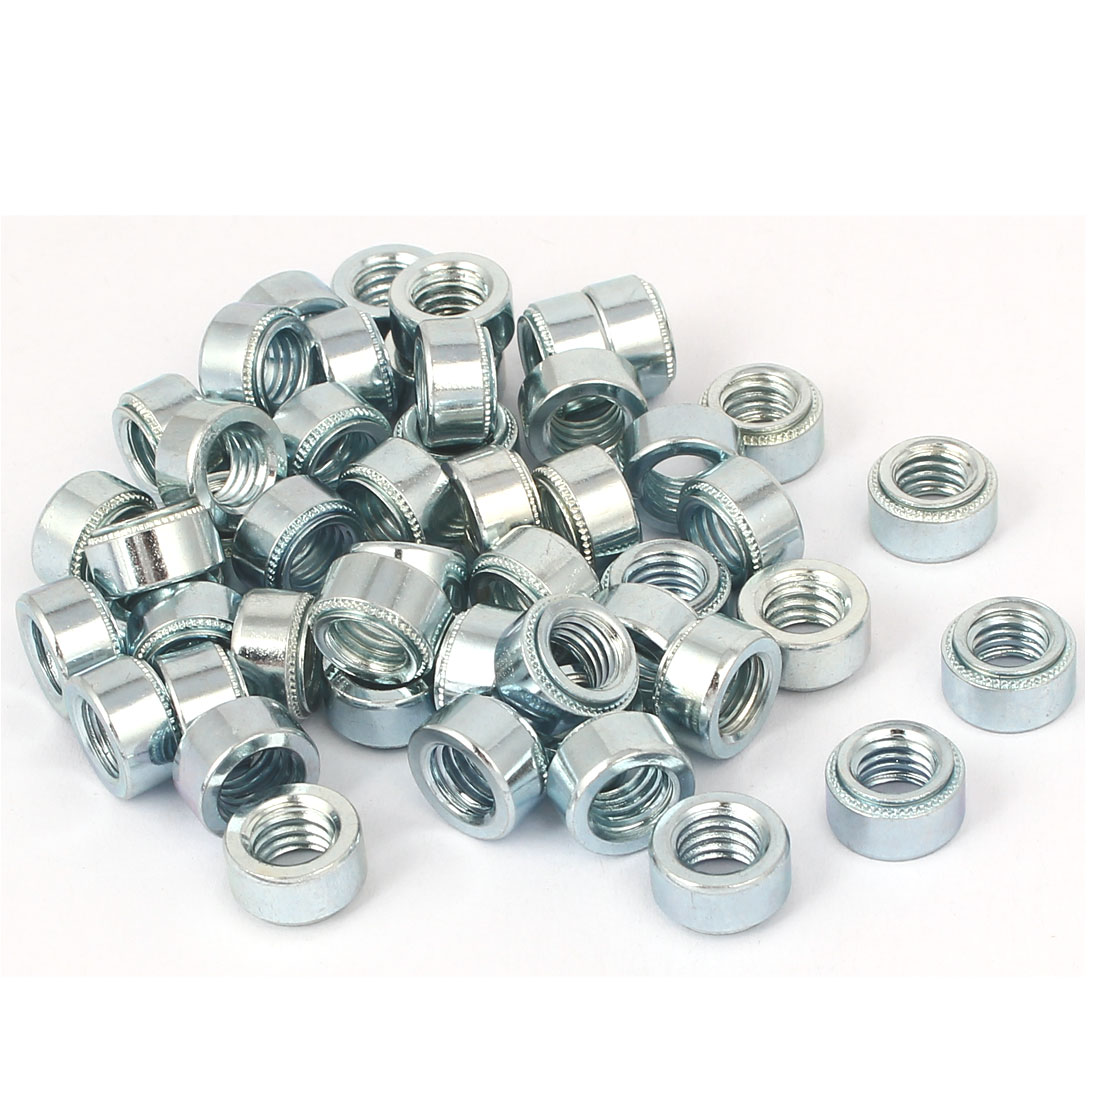 S-M8-1 Carbon Steel Self Clinching Rivet Nut Fastener 50pcs for 1.4mm Thin Plates